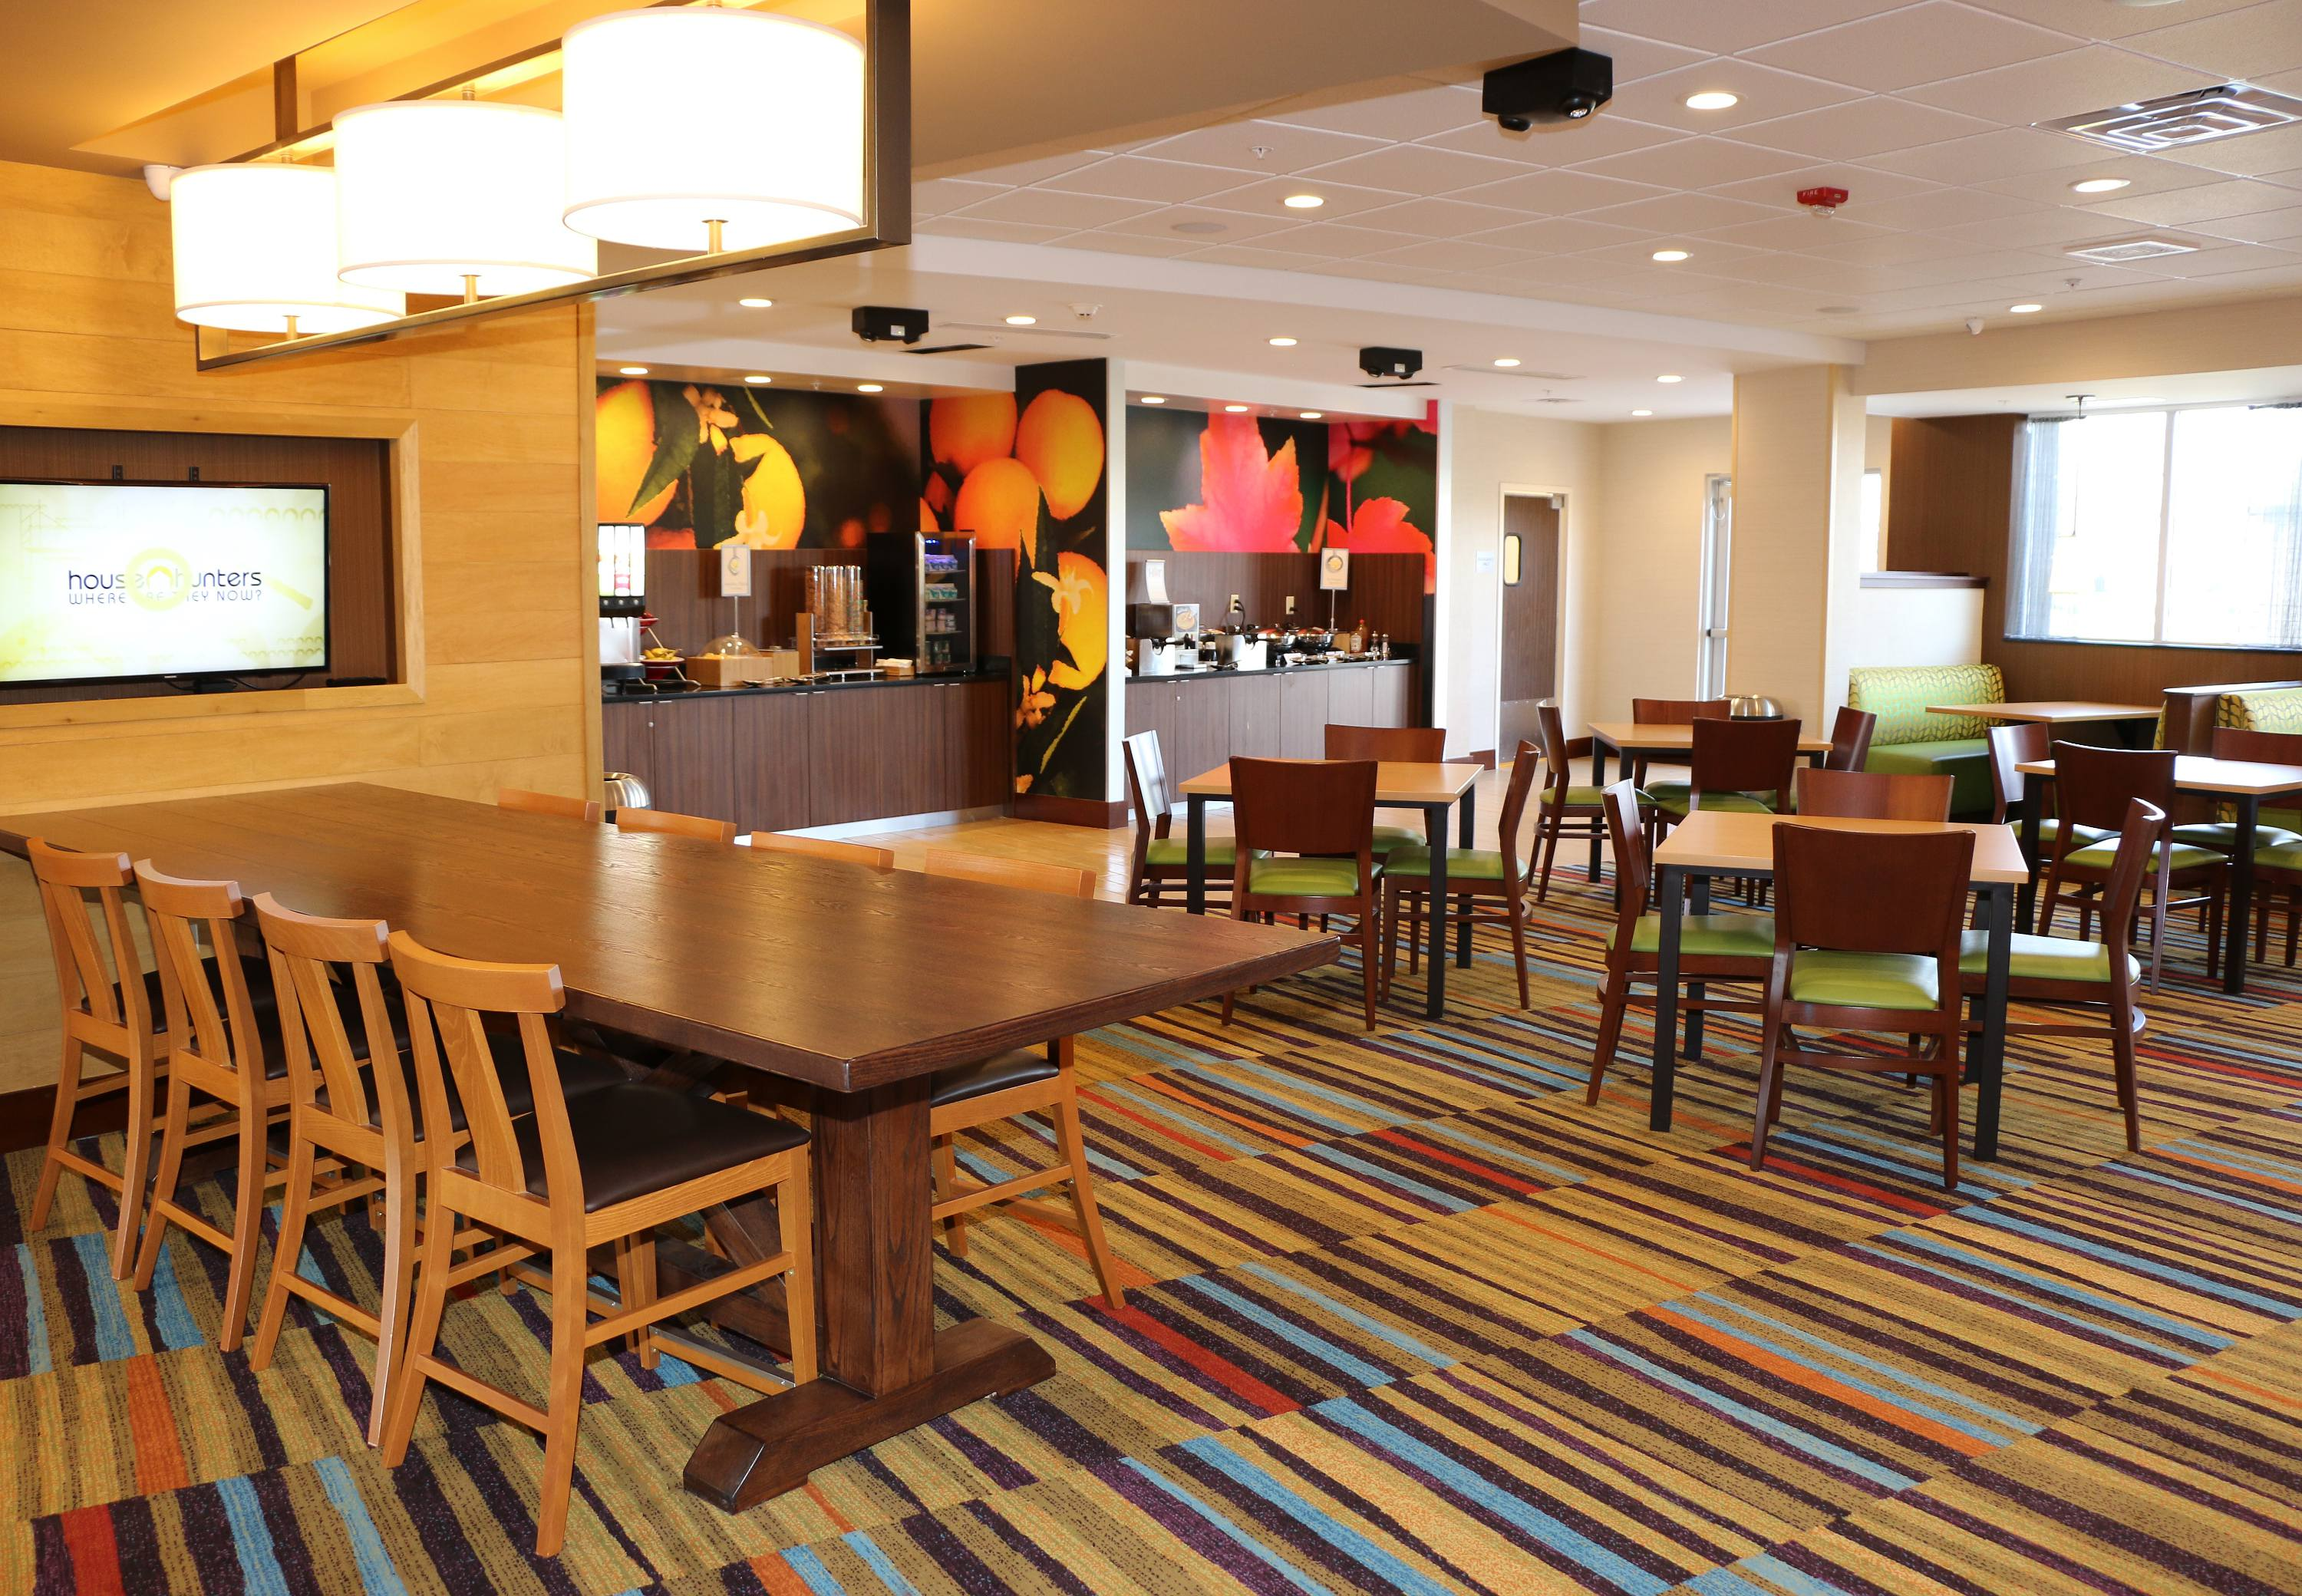 Fairfield Inn & Suites by Marriott Bowling Green image 10